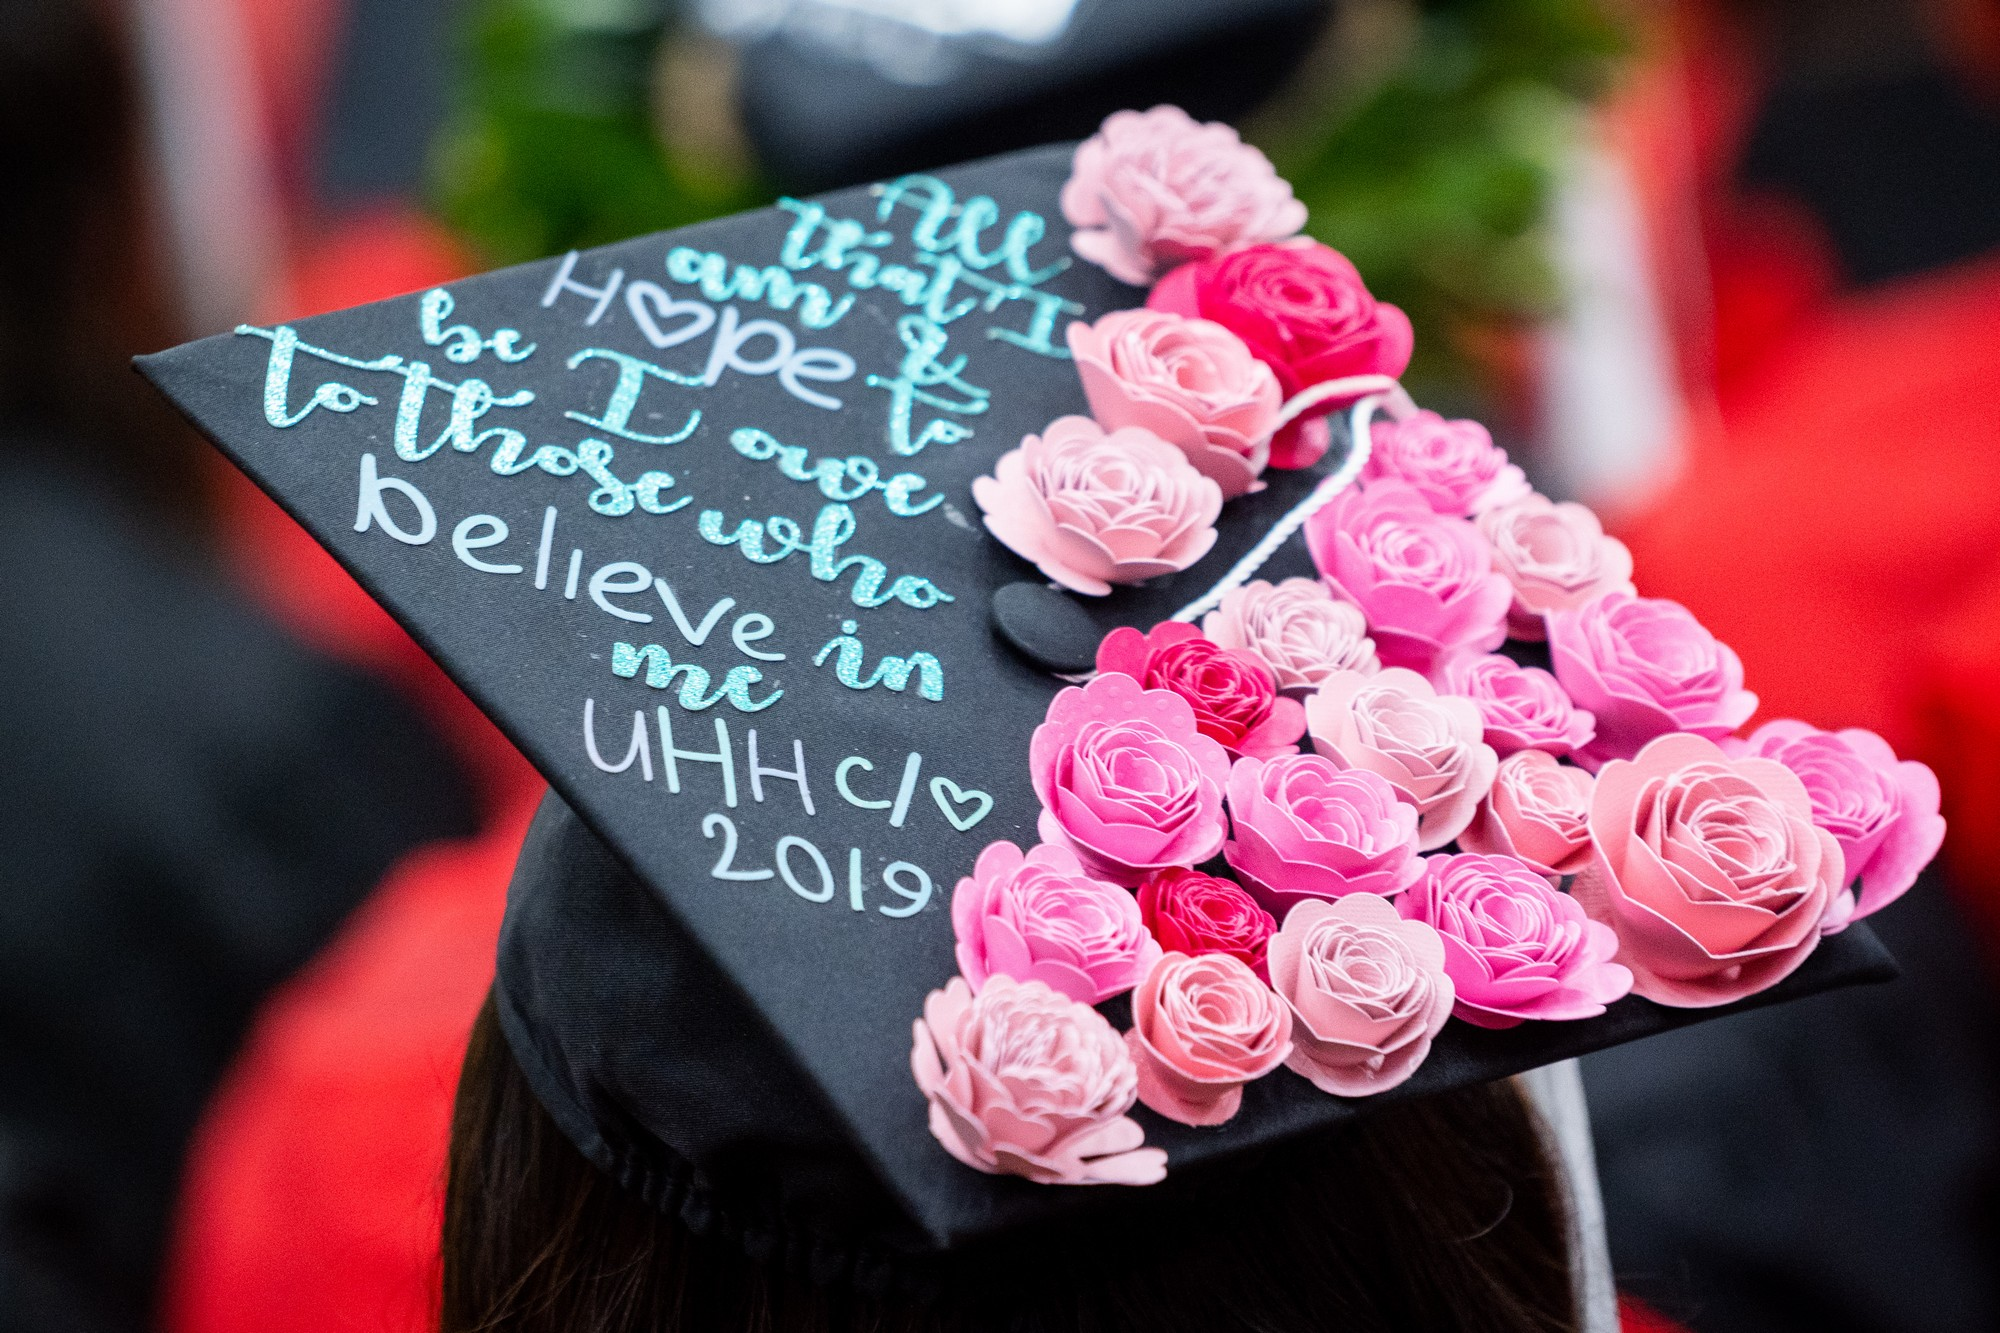 A close up of a mortarboard with flowers and the words: All that I am & hope to be I owe to those who believe in me, UHH 2019.